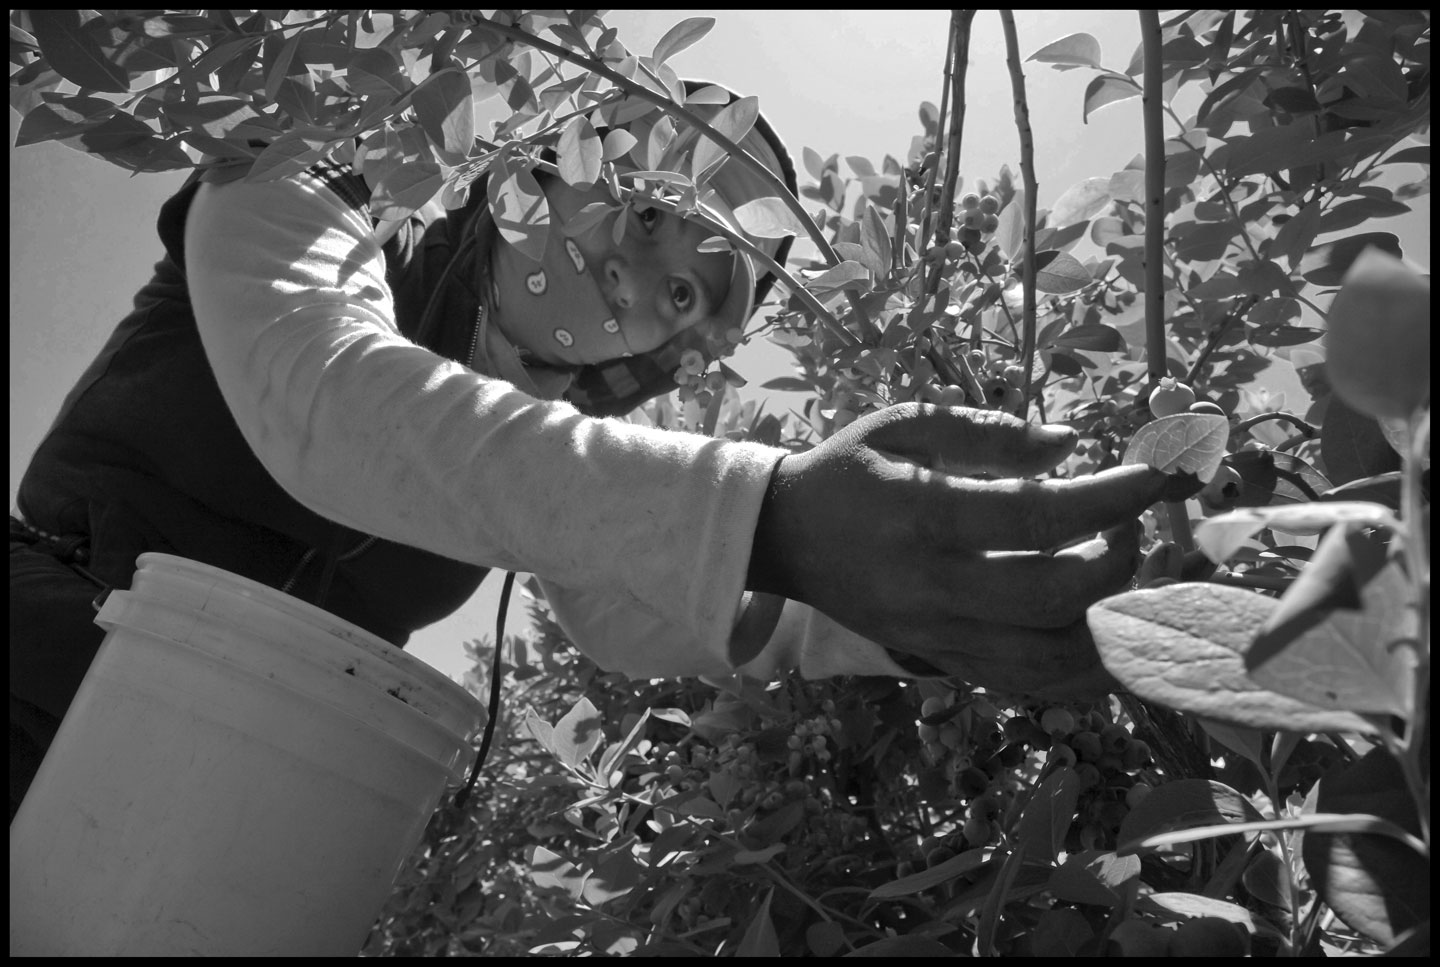 Lorena Hernandez, a 20-year-old farm worker and single mother of a 4-year-old girl, picks blueberries in a field in California's San Joaquin Valley. Workers are paid by $8 for each 12-pound bucket they pick.